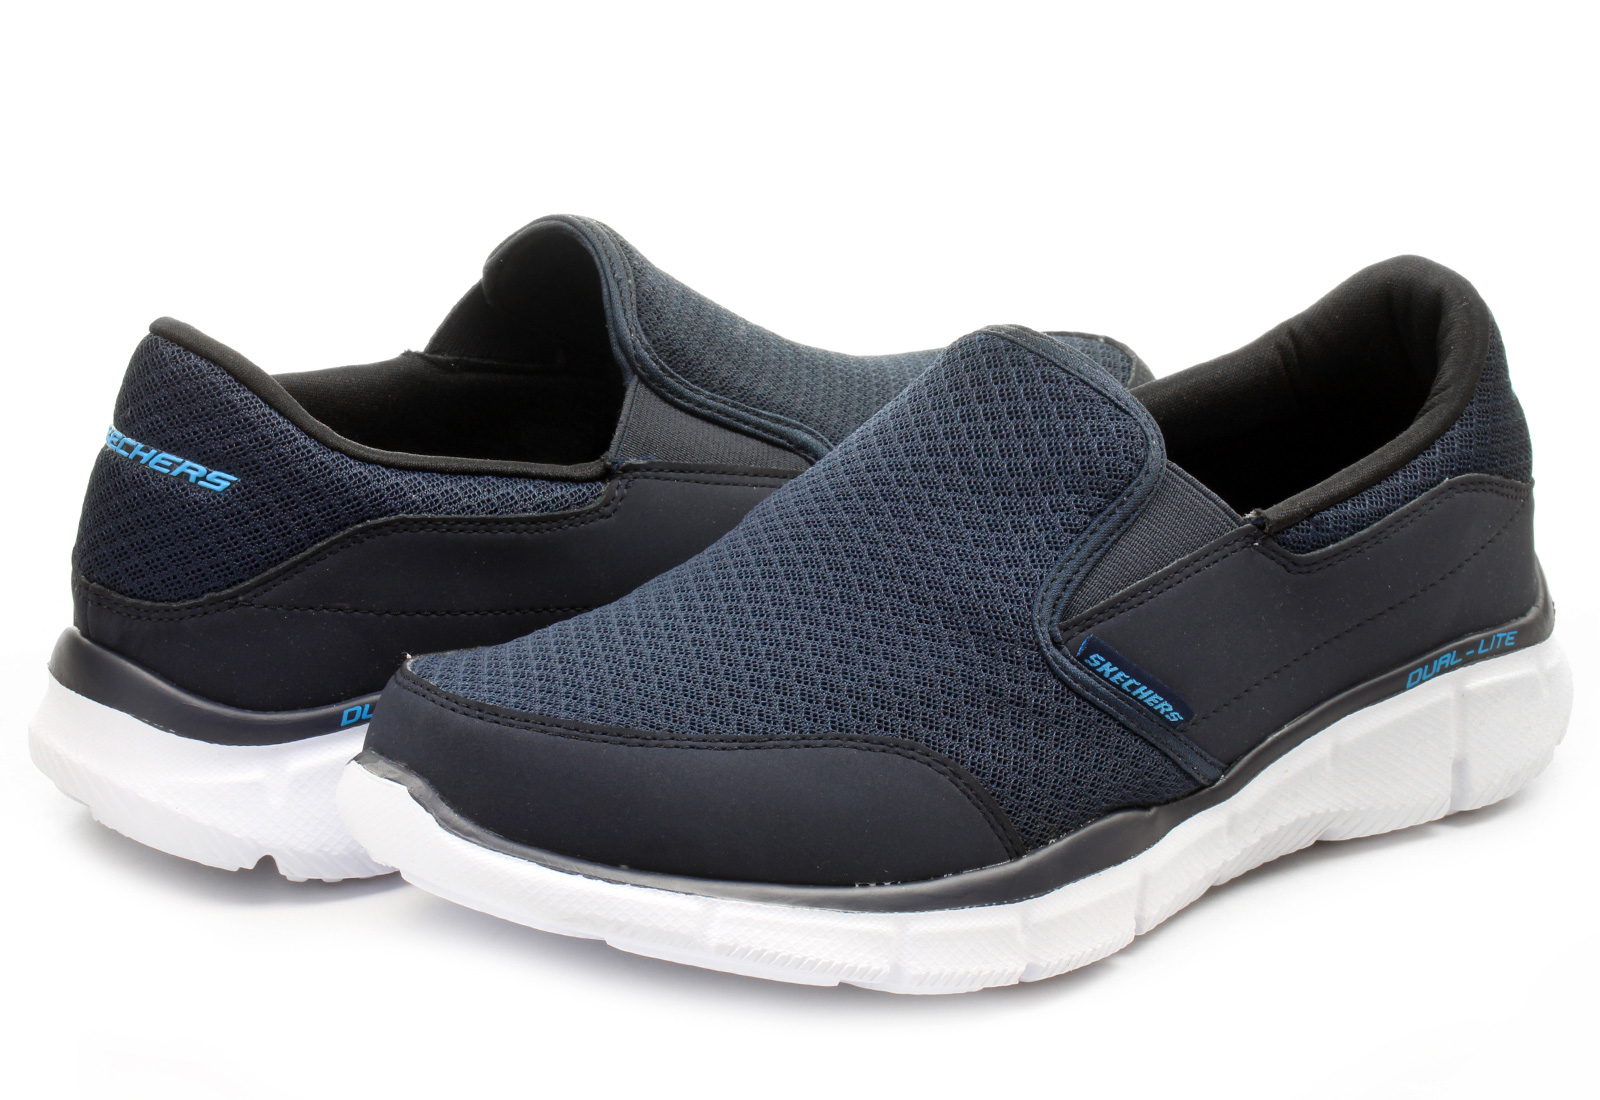 59edc208ae992 Skechers Slip-on - Persistent - 51361-nvy - Online shop for sneakers ...